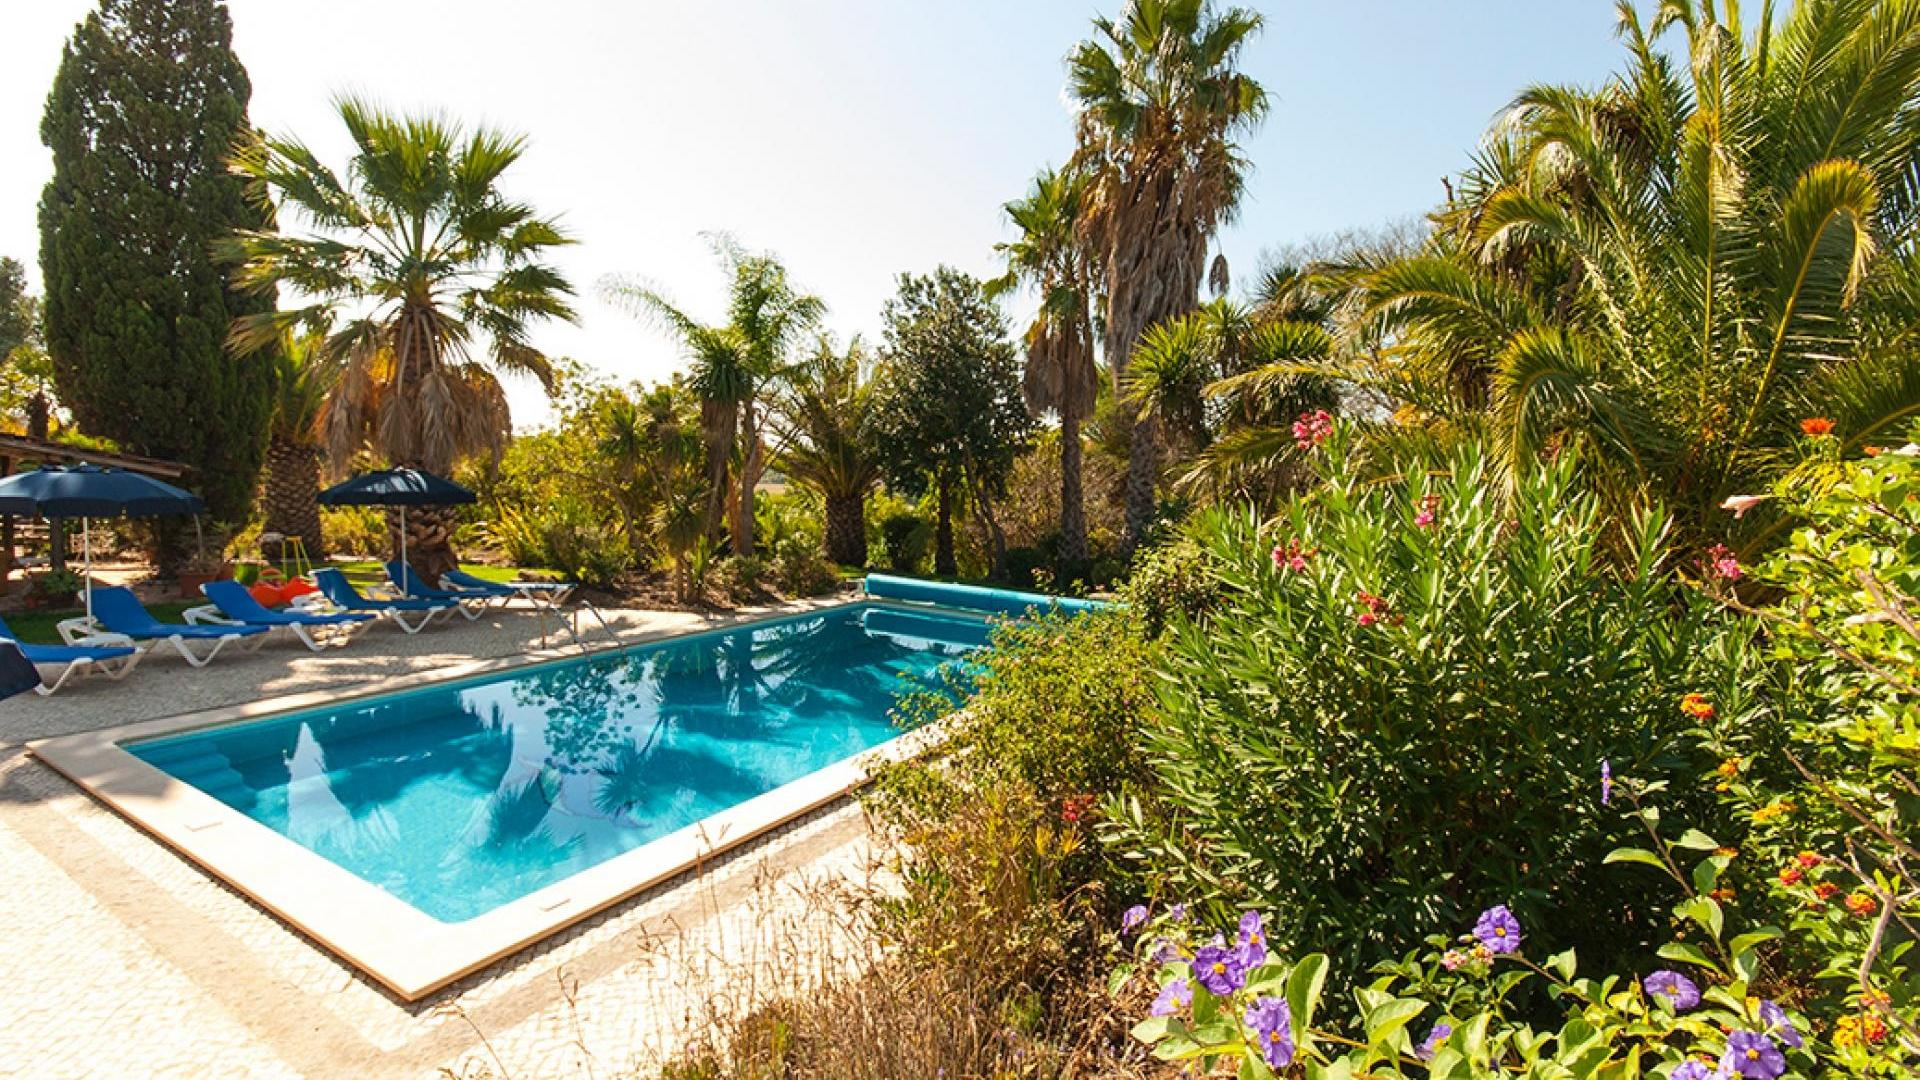 child-friendly holiday apartment in the Algarve, Portugal - JPJ